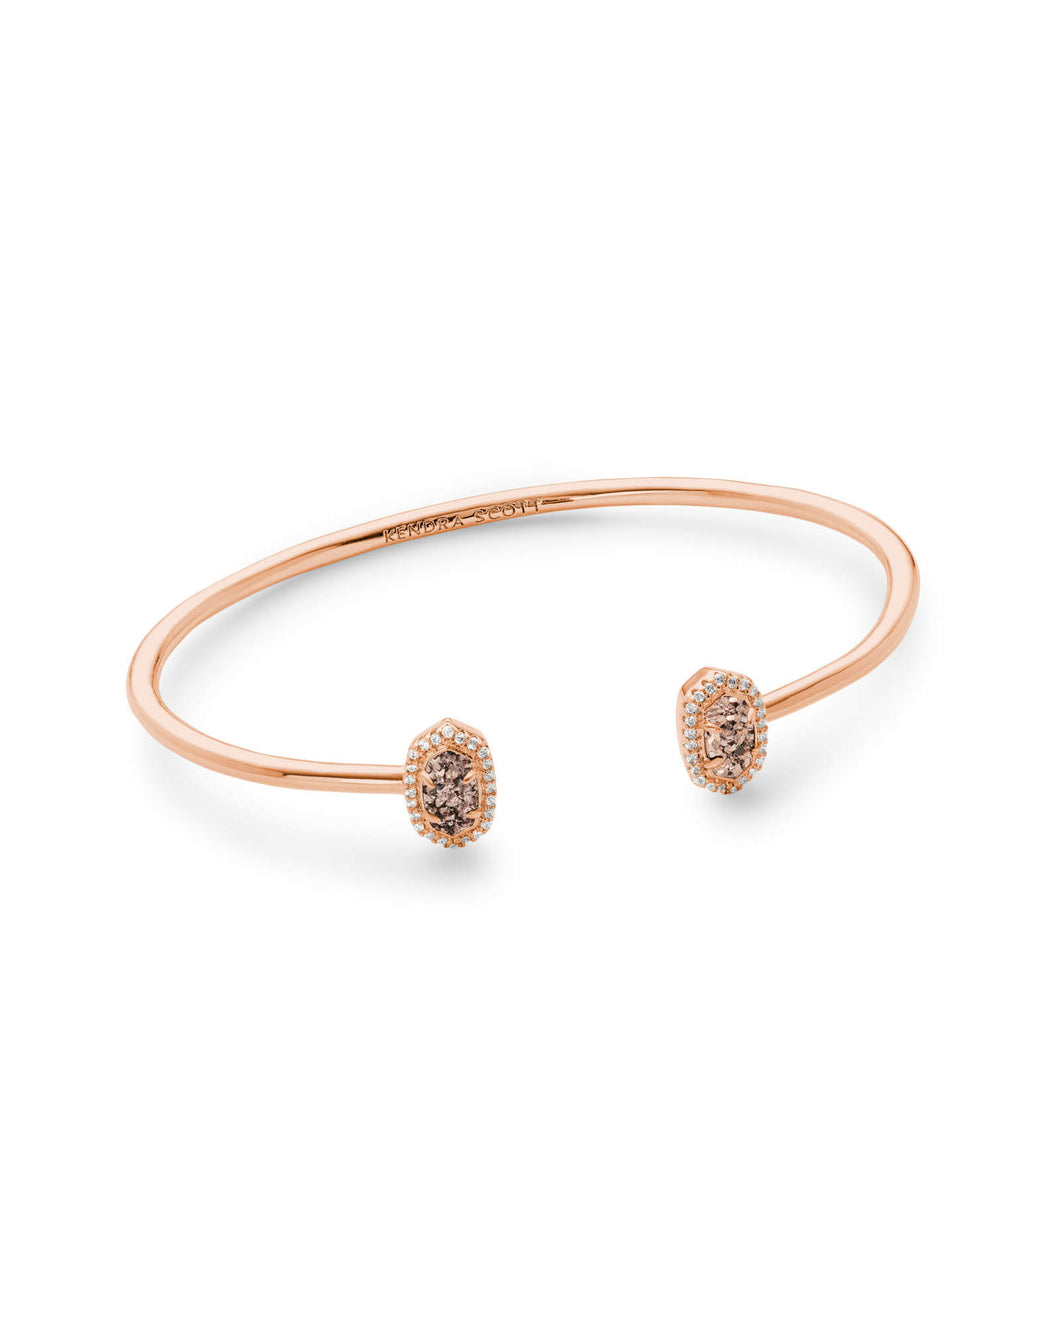 Kendra Scott Calla Bracelet in Rose Gold